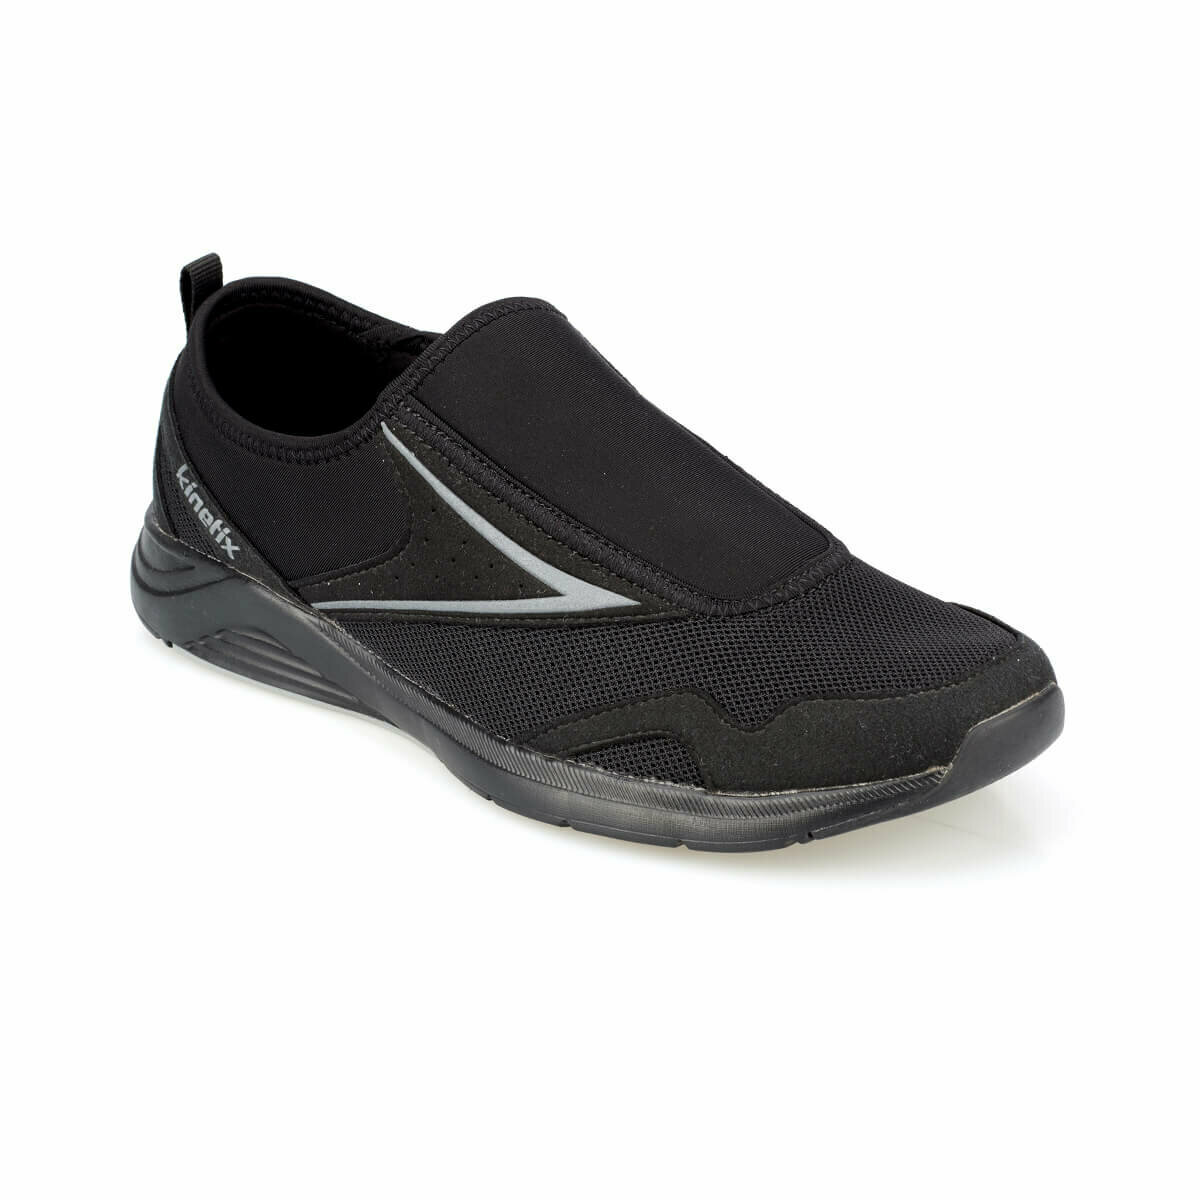 FLO Rush OF Black Men 'S Comfort Shoes KINETIX